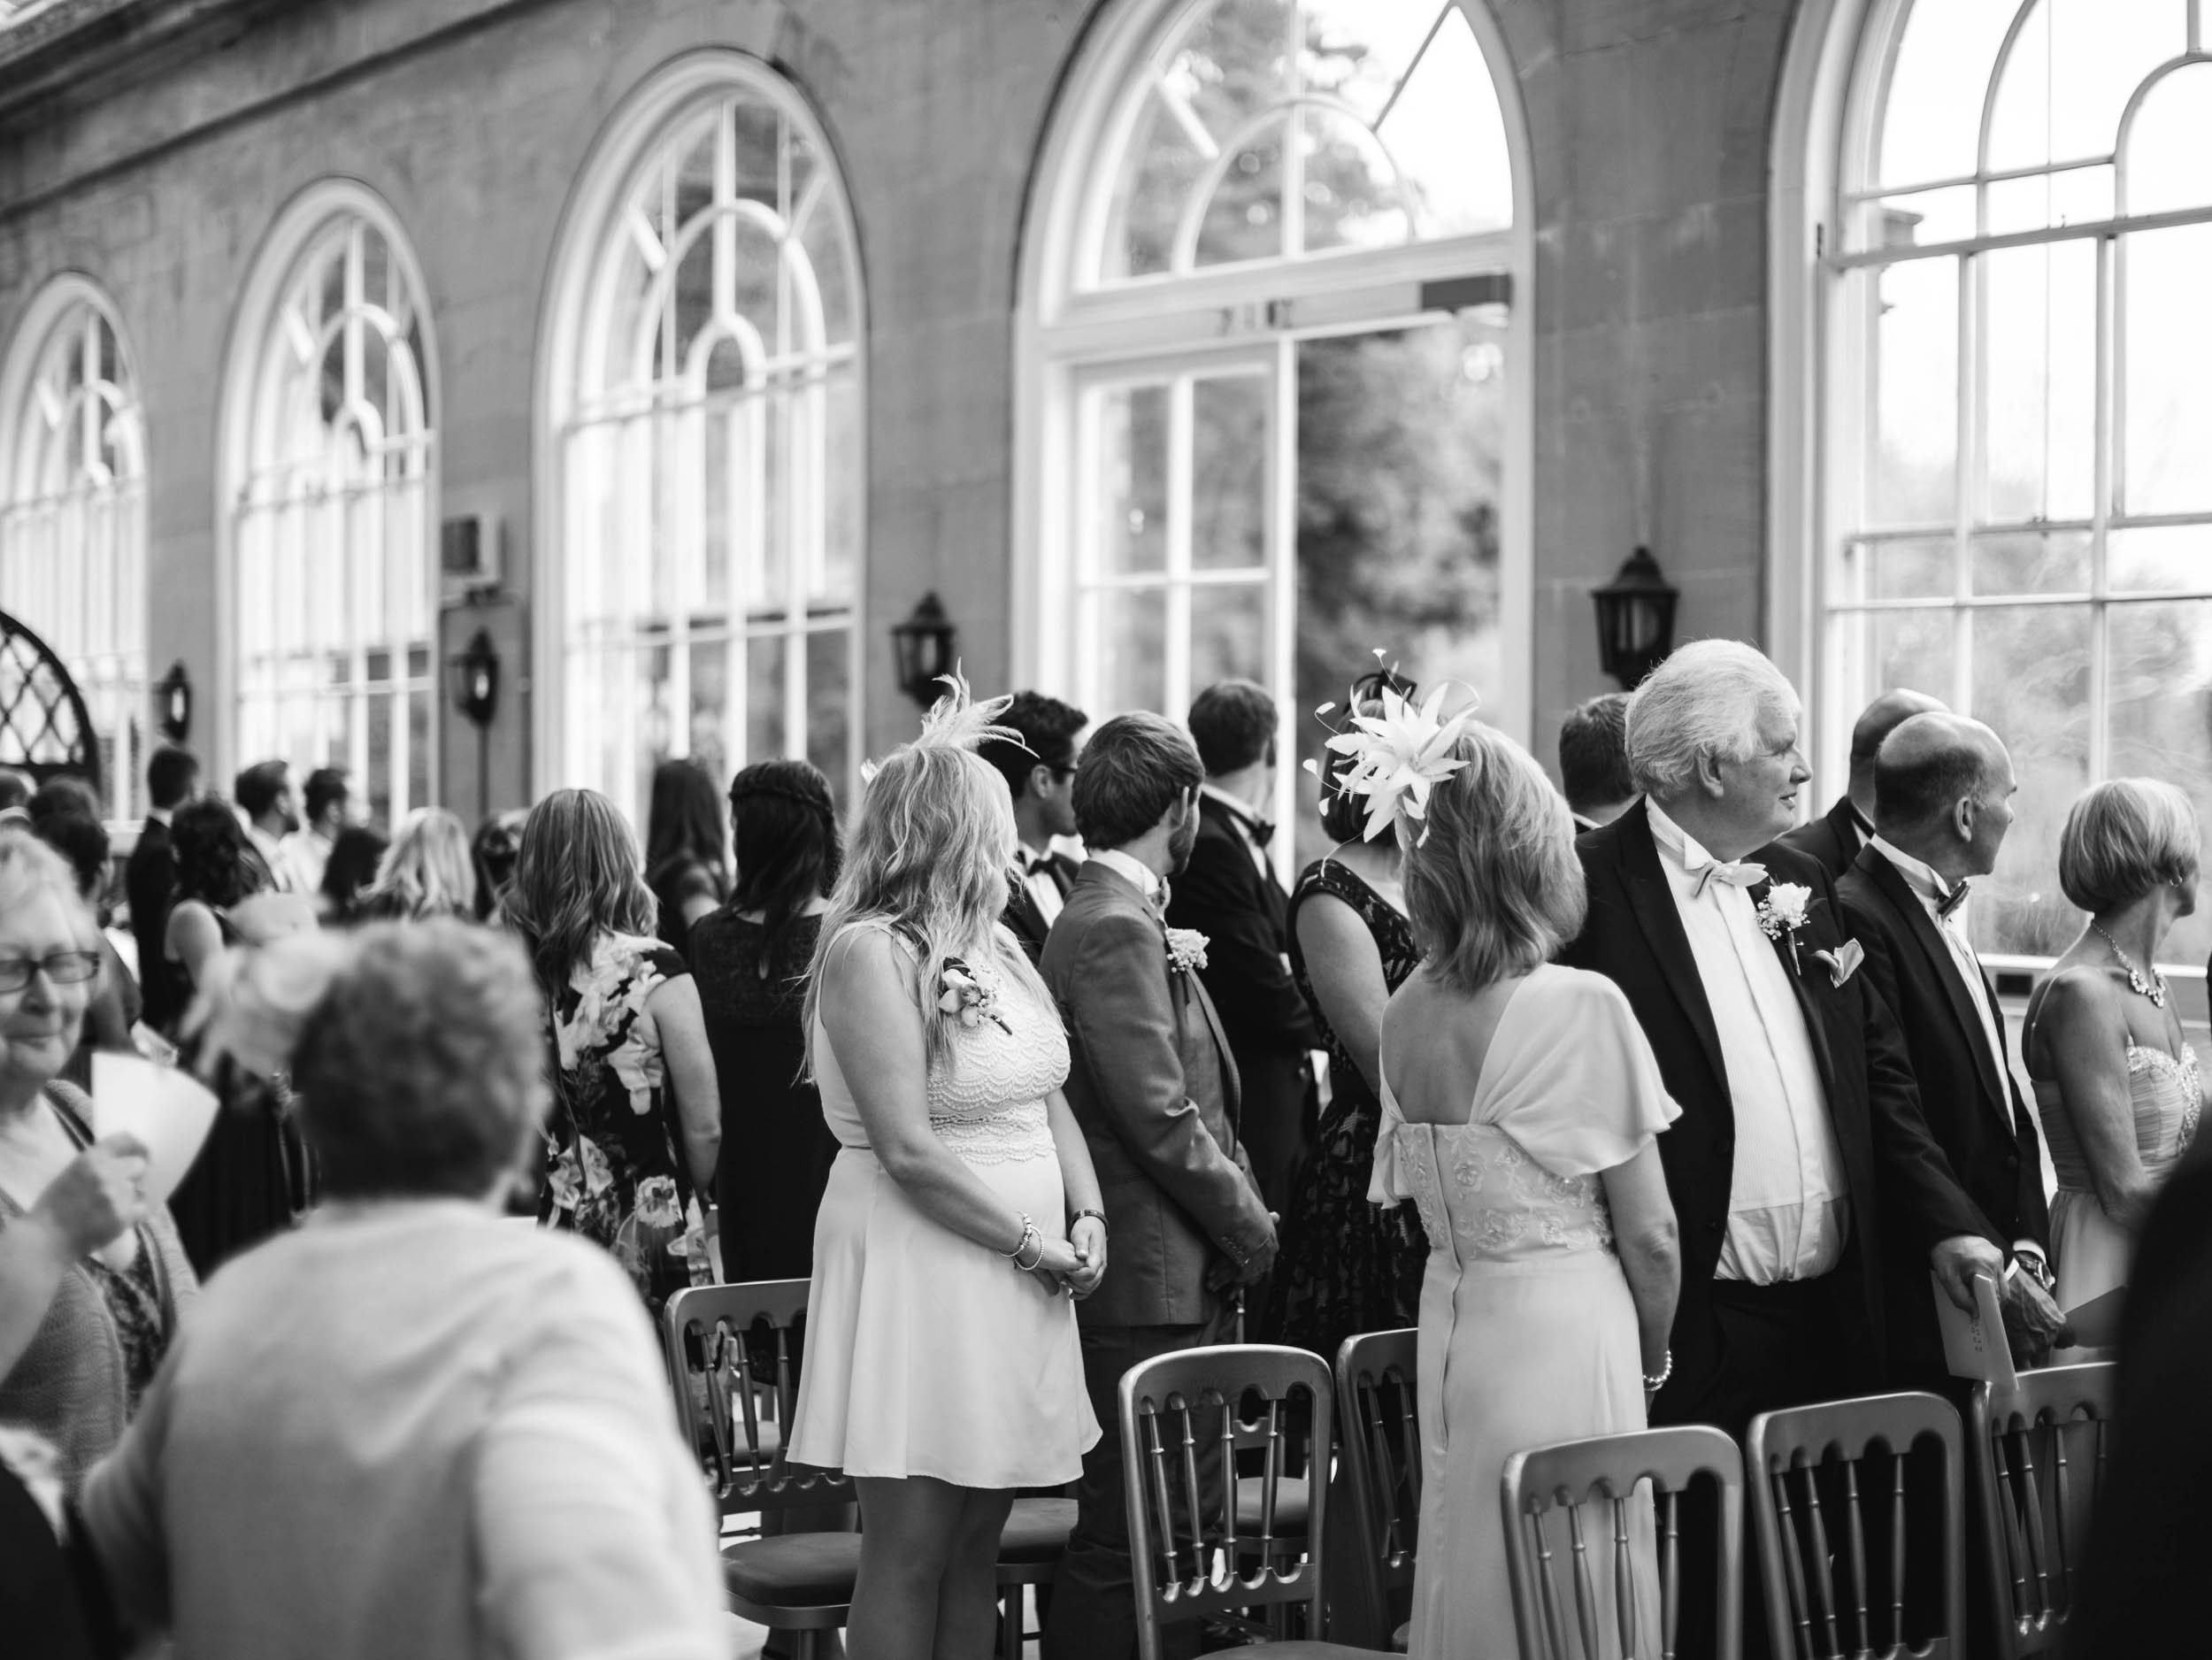 Amy O'Boyle Photography- Destination & UK Fine Art Film Wedding Photographer- Stoneleigh Abbey Wedding-43.jpg